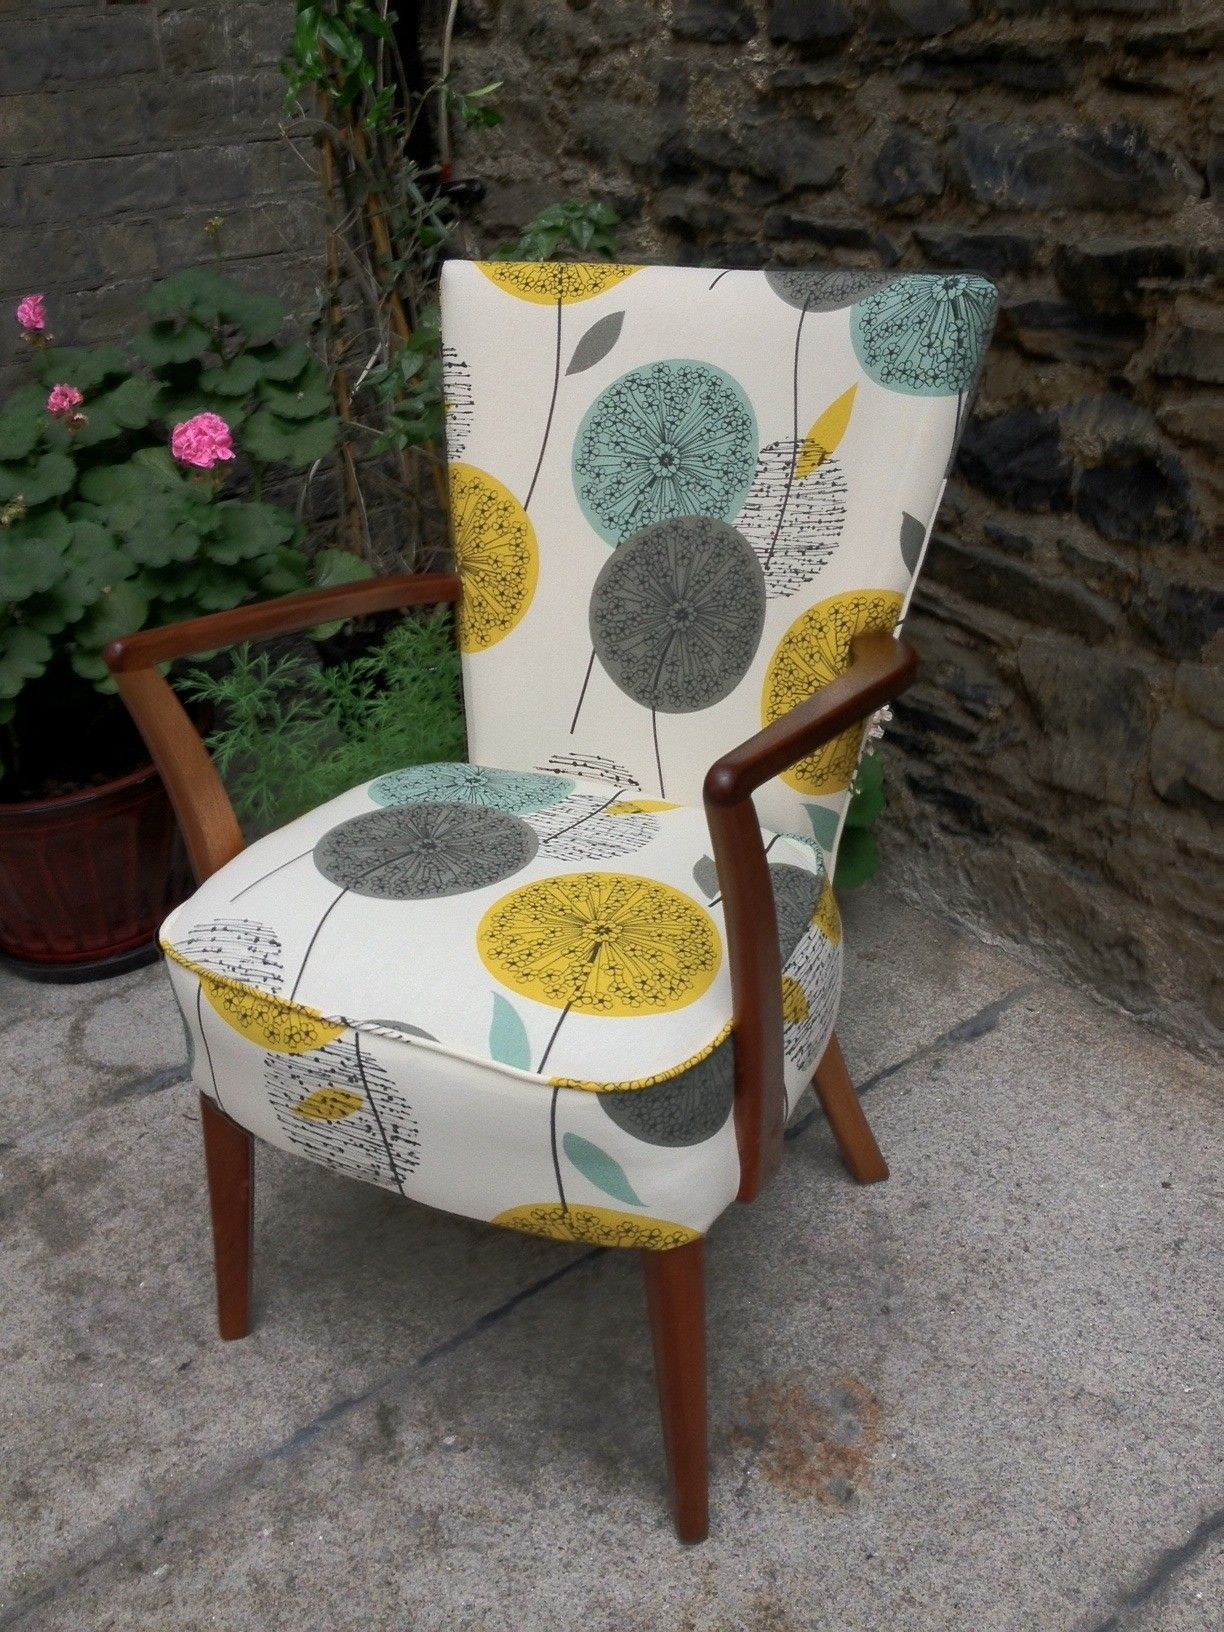 Upholstery Fabrics I Love The Design Of The Chair Mid Century Modern And The Pattern Which Is